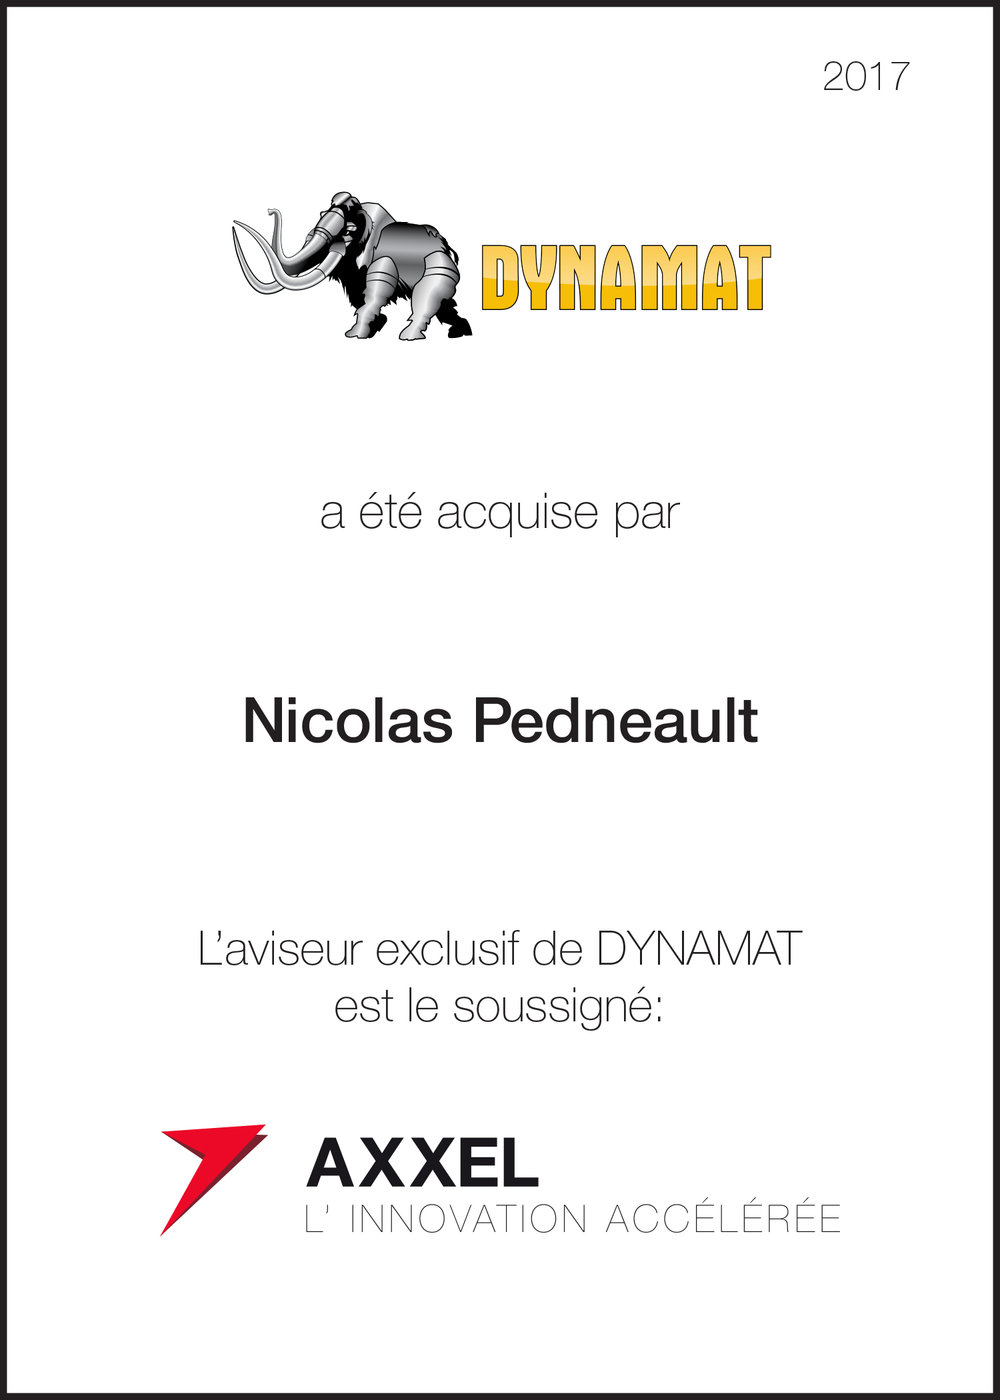 dynamat website.jpg